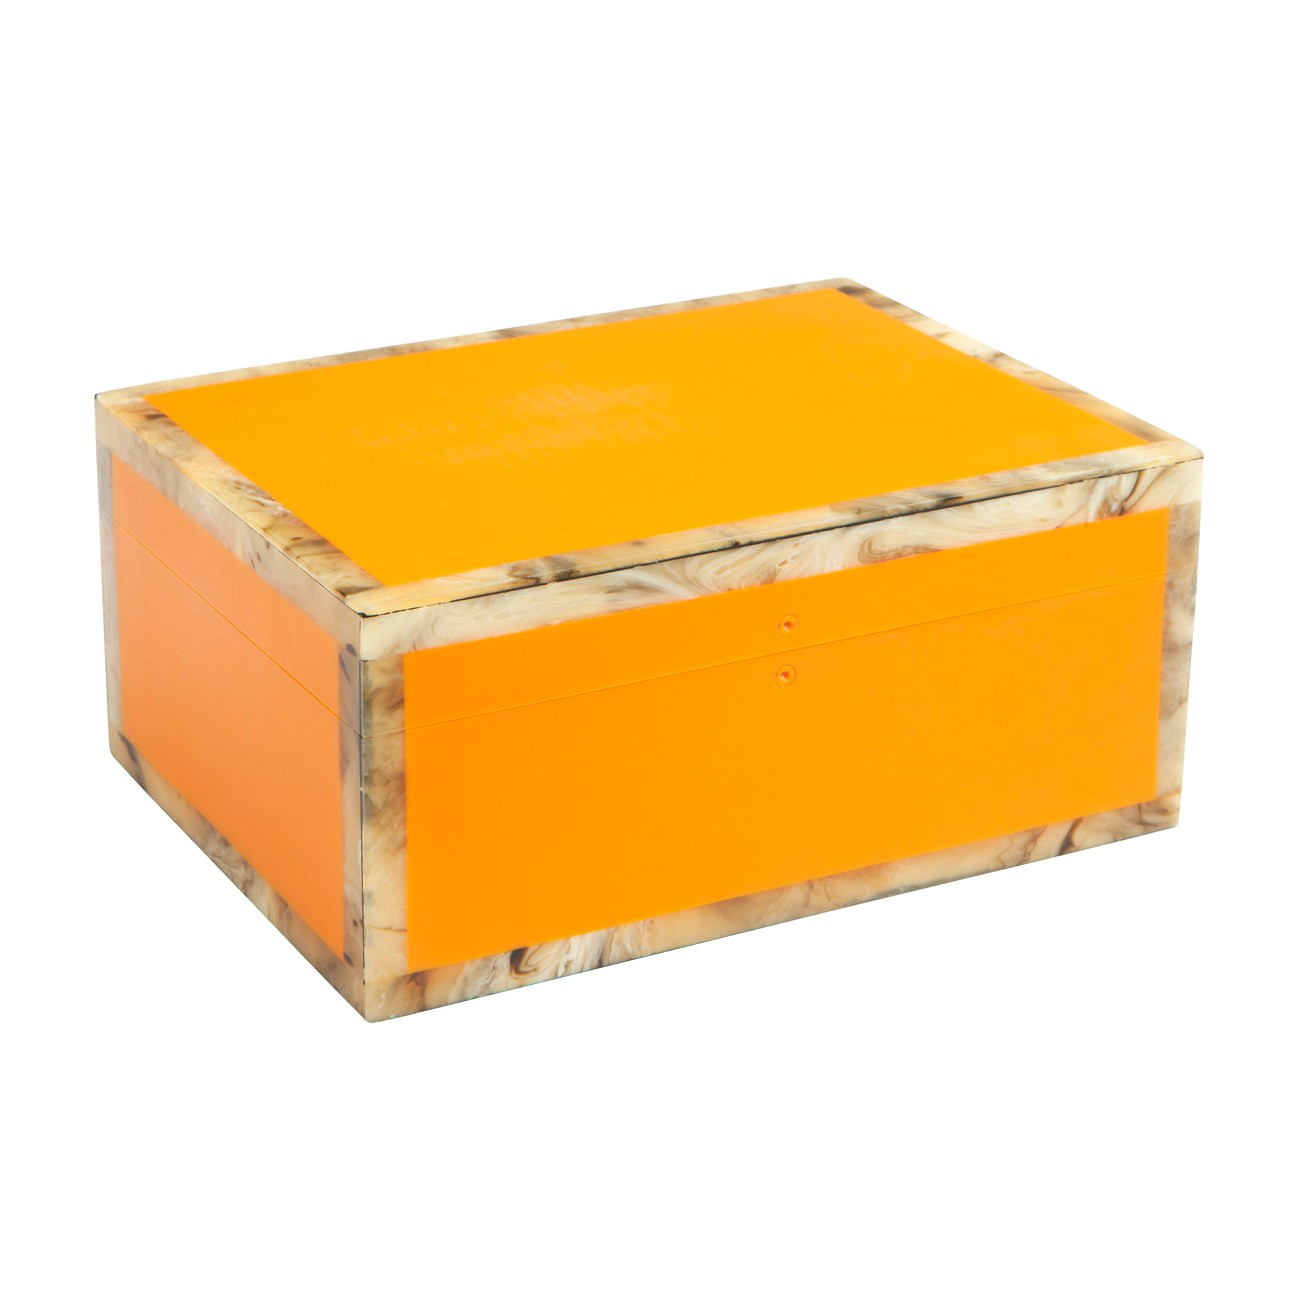 Harlow Nesting Storage Box, Medium, Orange